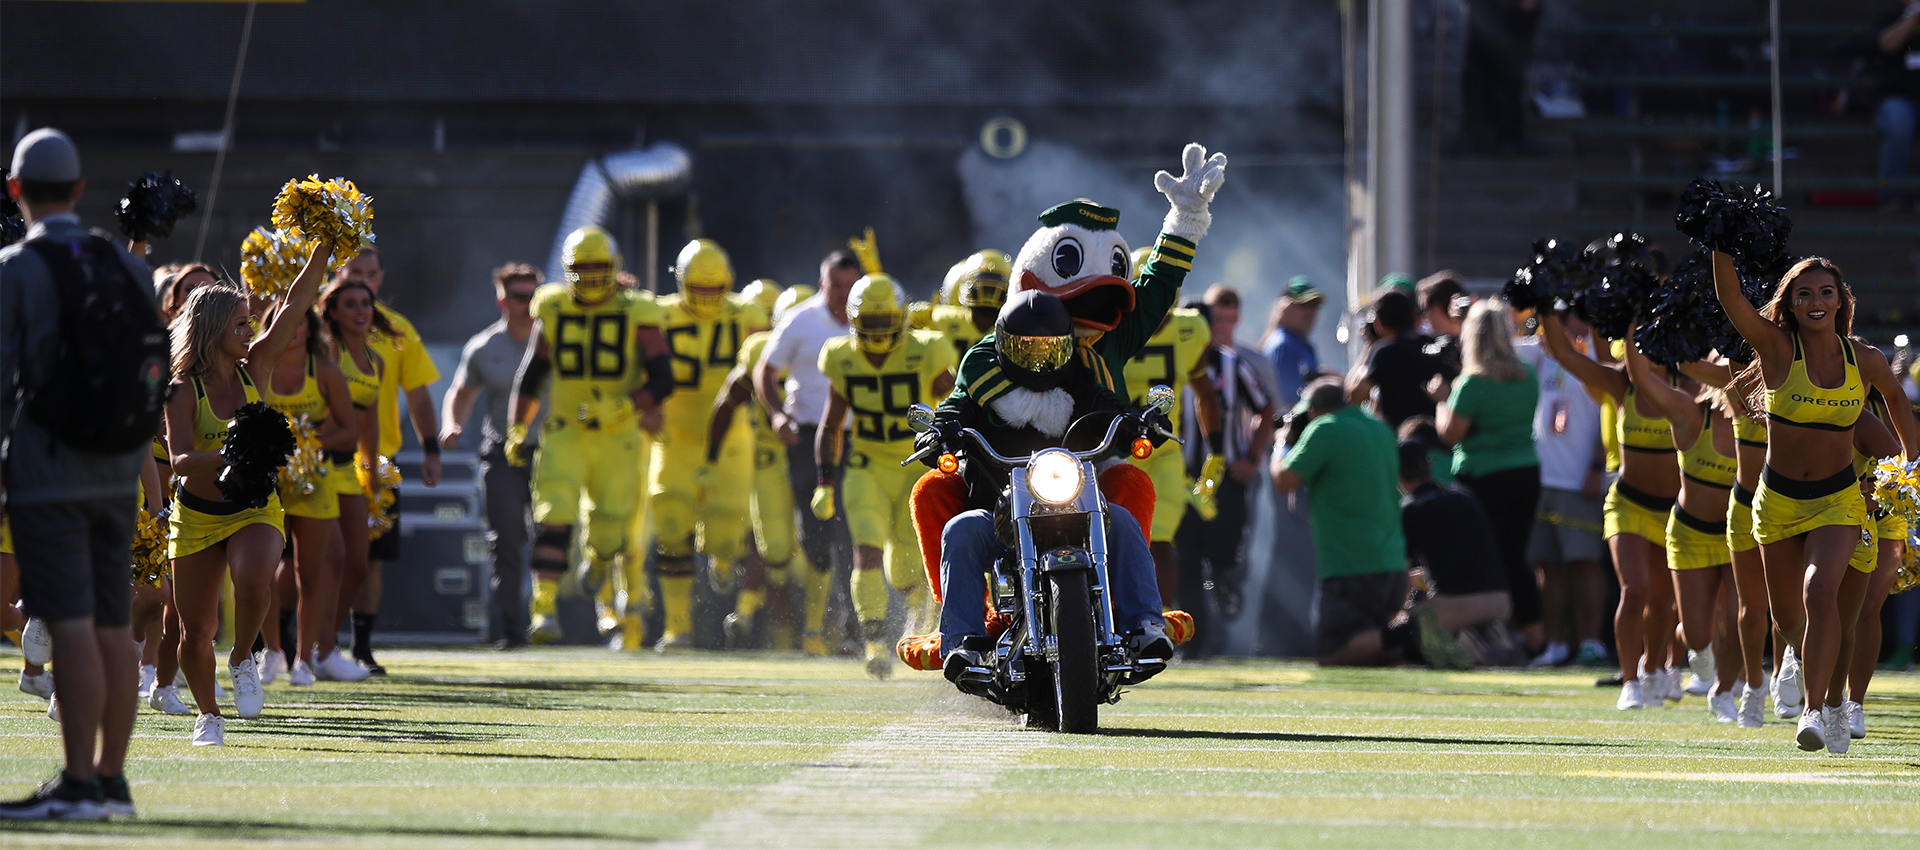 Oregon Duck on Motorcycle